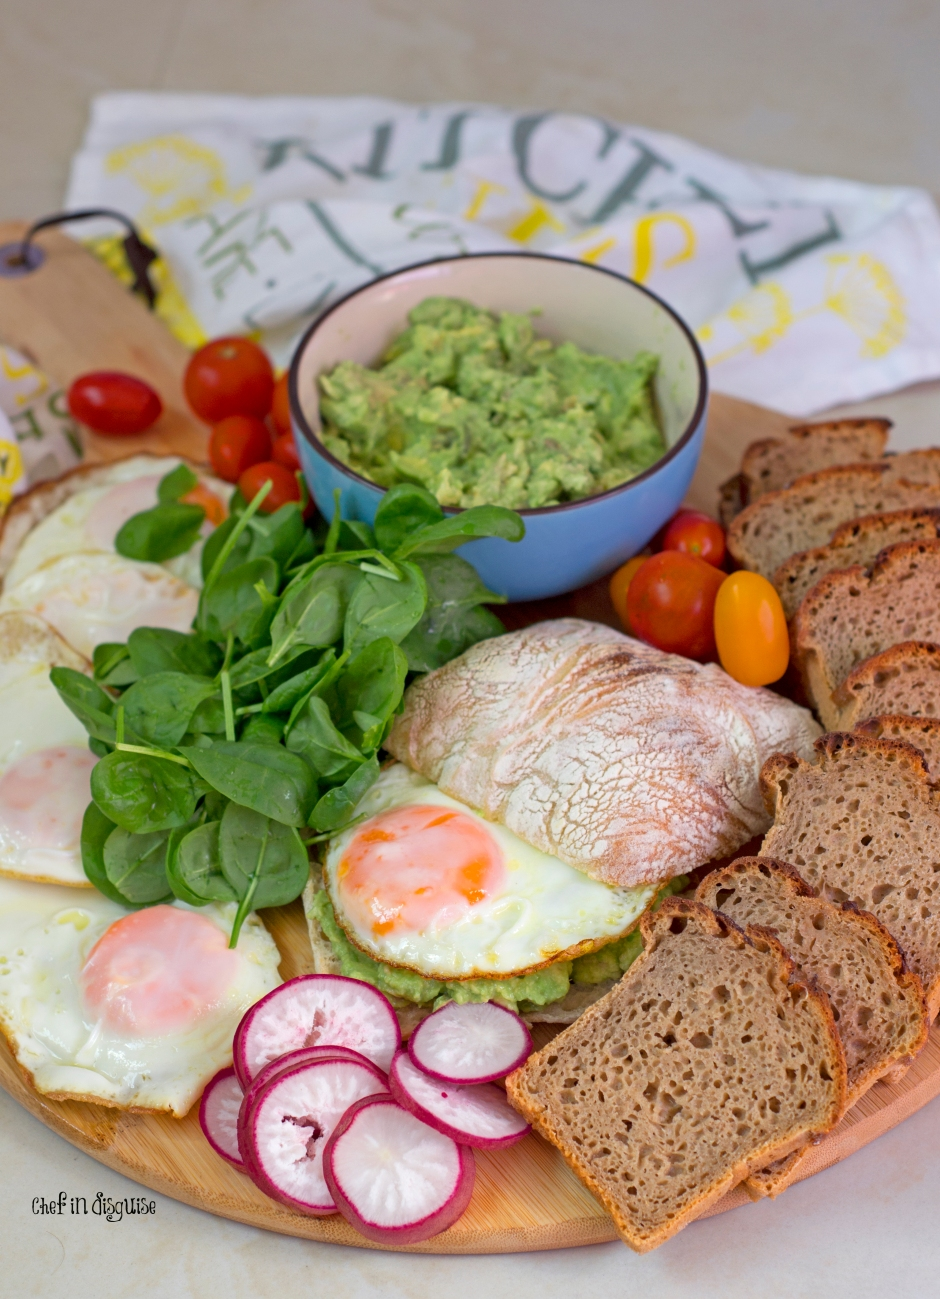 Avocado and sunny side up eggs -breakfast platter.jpg